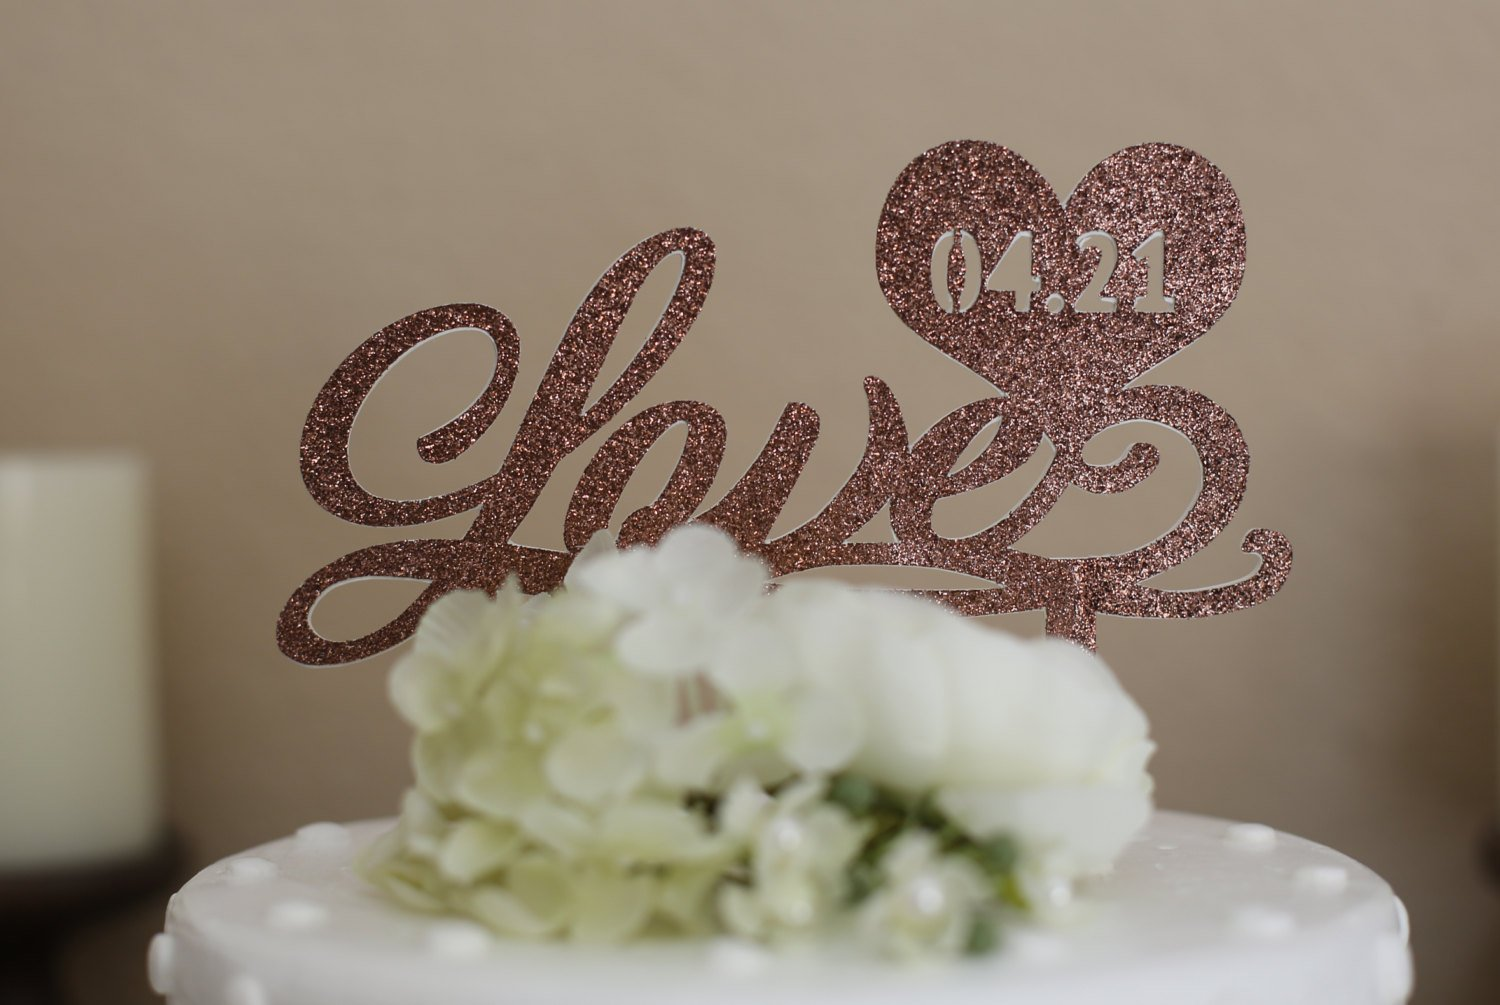 LOVE Cake topper Personalized Cake topper Glitter cake topper,Gold cake toppers Customized Cake Toppers Brown Glitter Cake Toppers